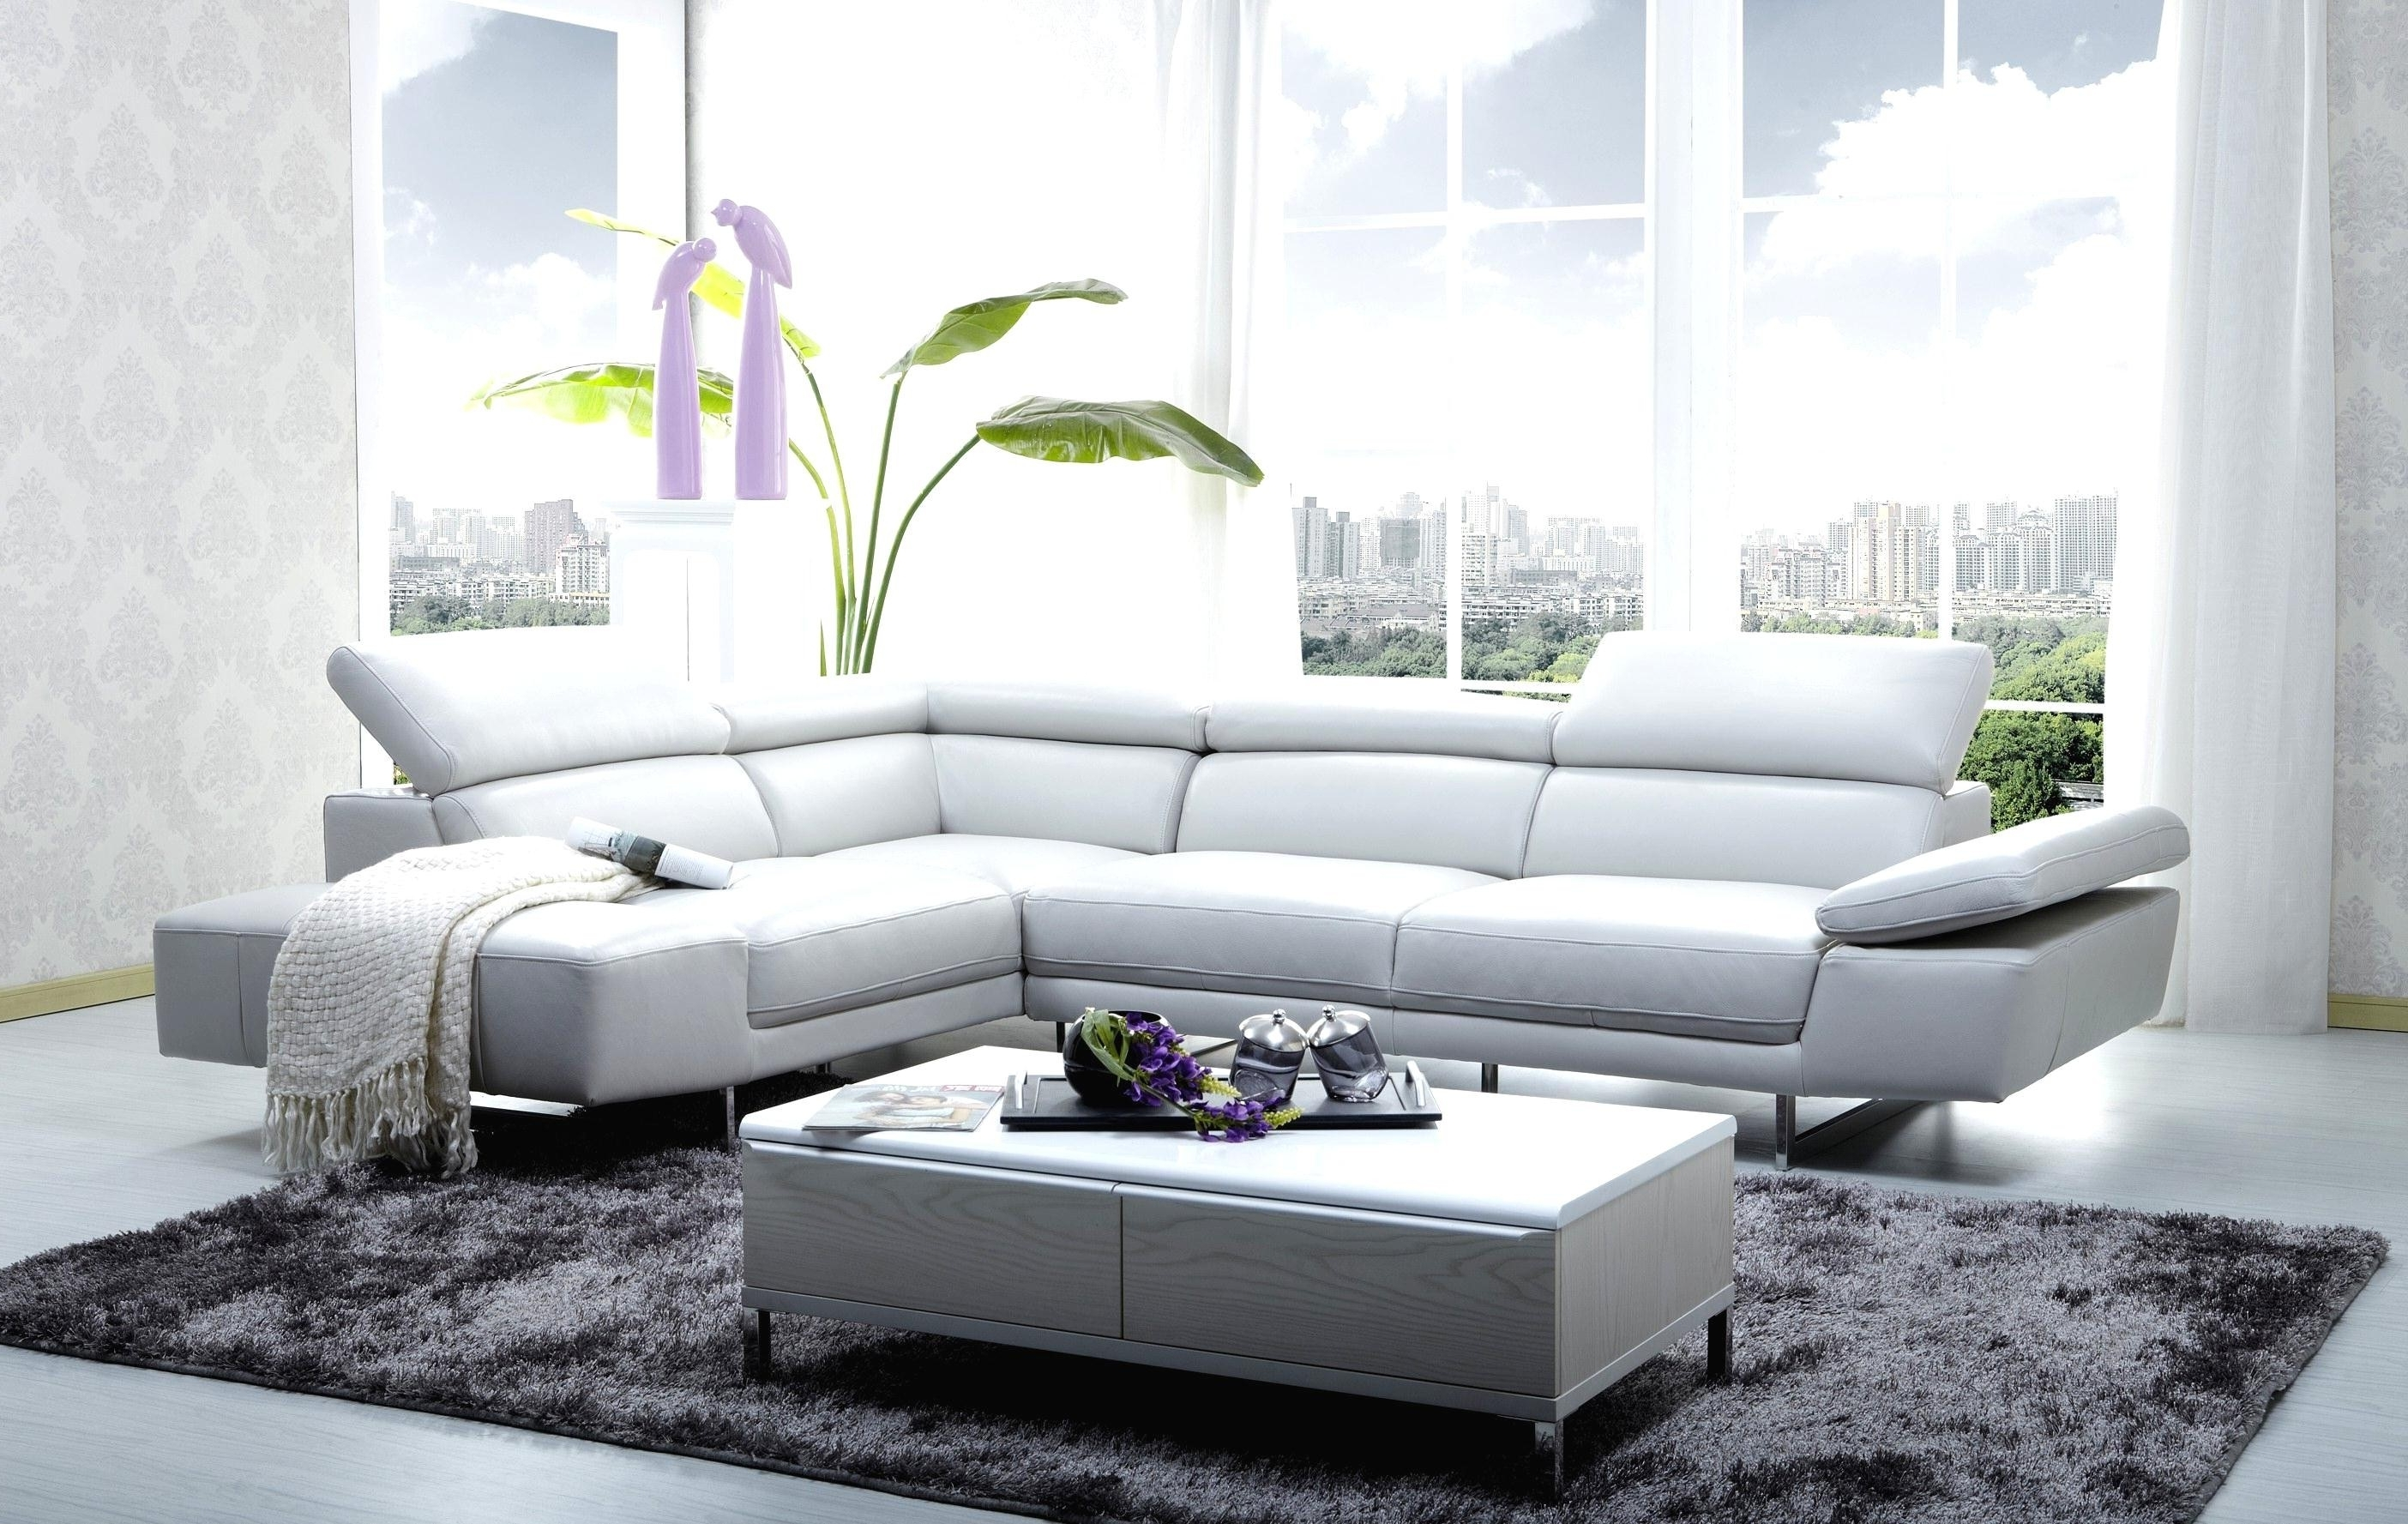 High Quality Leather Sectional Sofas – Fjellkjeden For Best And Newest Quality Sectional Sofas (View 5 of 15)